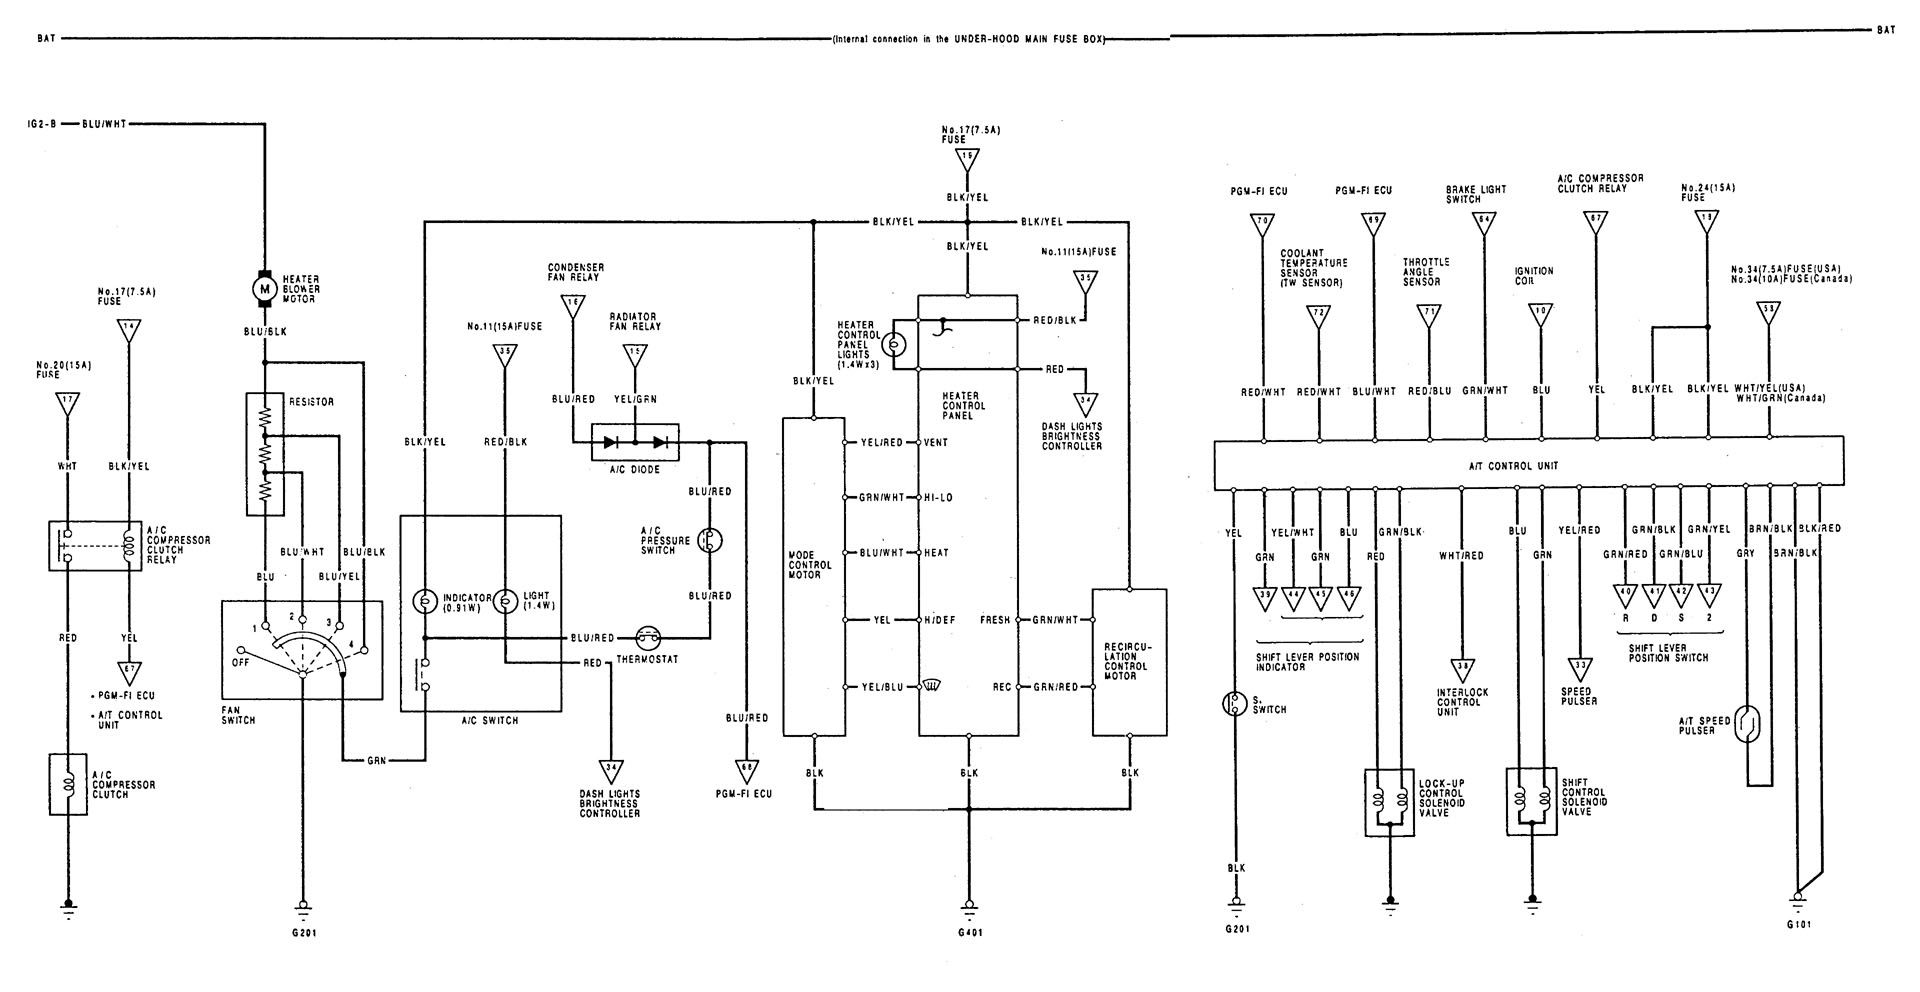 Acura Integra Transmission Diagram - Lir Wiring 101 on eclipse wiring diagram, yamaha wiring diagram, at&t wiring diagram, nissan wiring diagram, technics wiring diagram, toyota wiring diagram, kenwood wiring diagram, bmw wiring diagram, matrix wiring diagram, mitsubishi wiring diagram, ford wiring diagram, sony wiring diagram, acura wiring diagram, pioneer wiring diagram, ge wiring diagram, camaro wiring diagram, 3000gt wiring diagram, mustang wiring diagram, fisher wiring diagram, jvc wiring diagram,